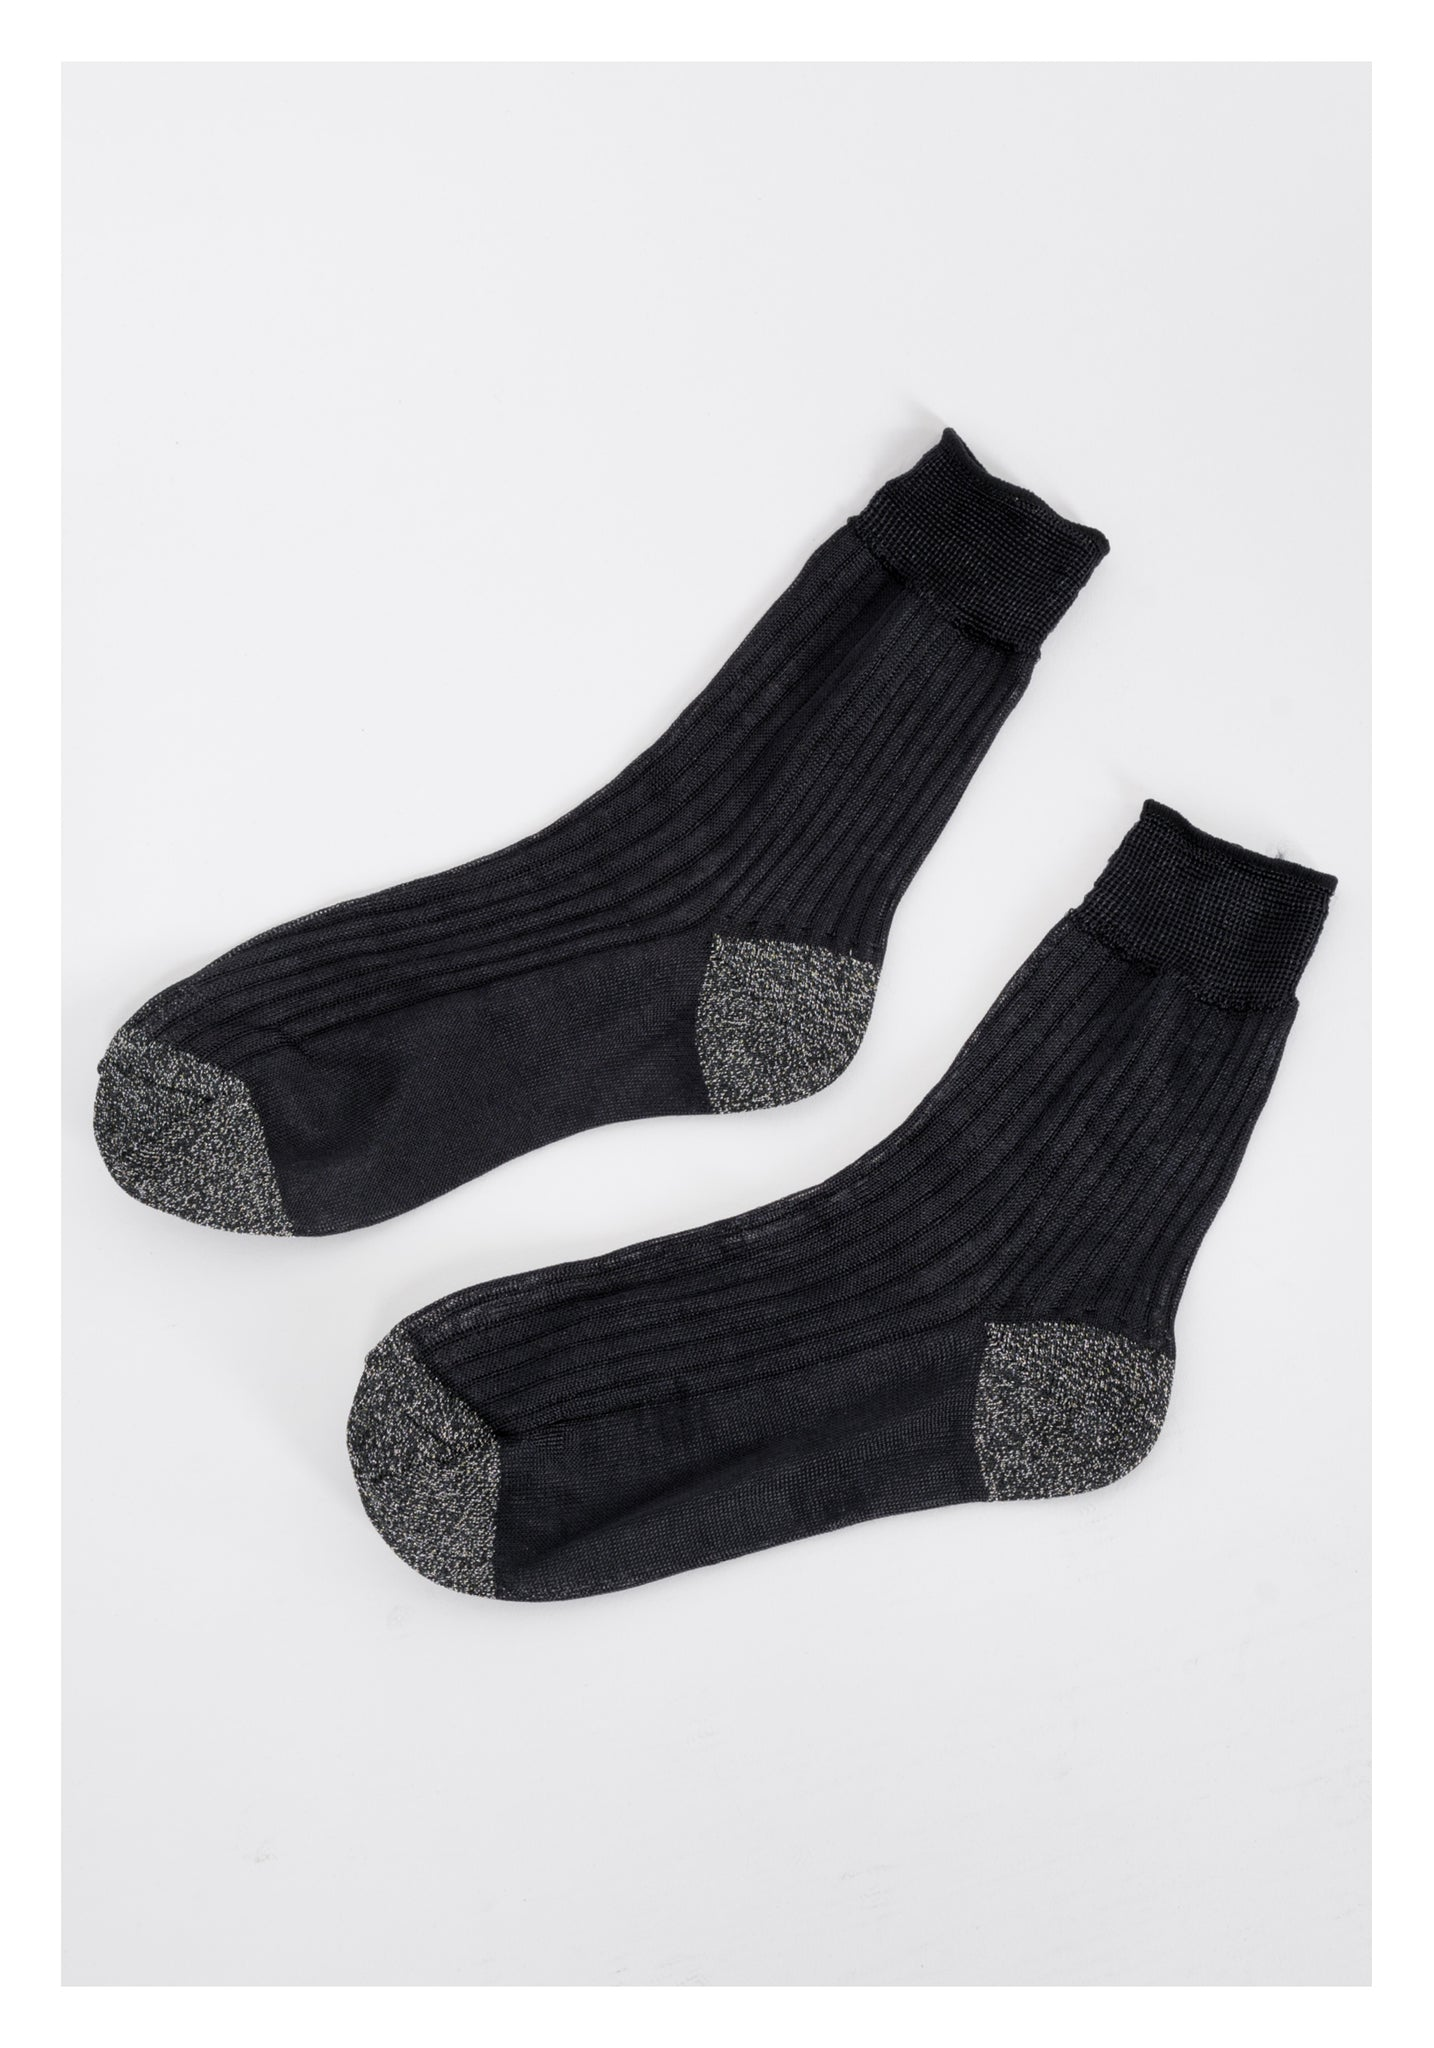 Silver Black Shinny Socks - whoami